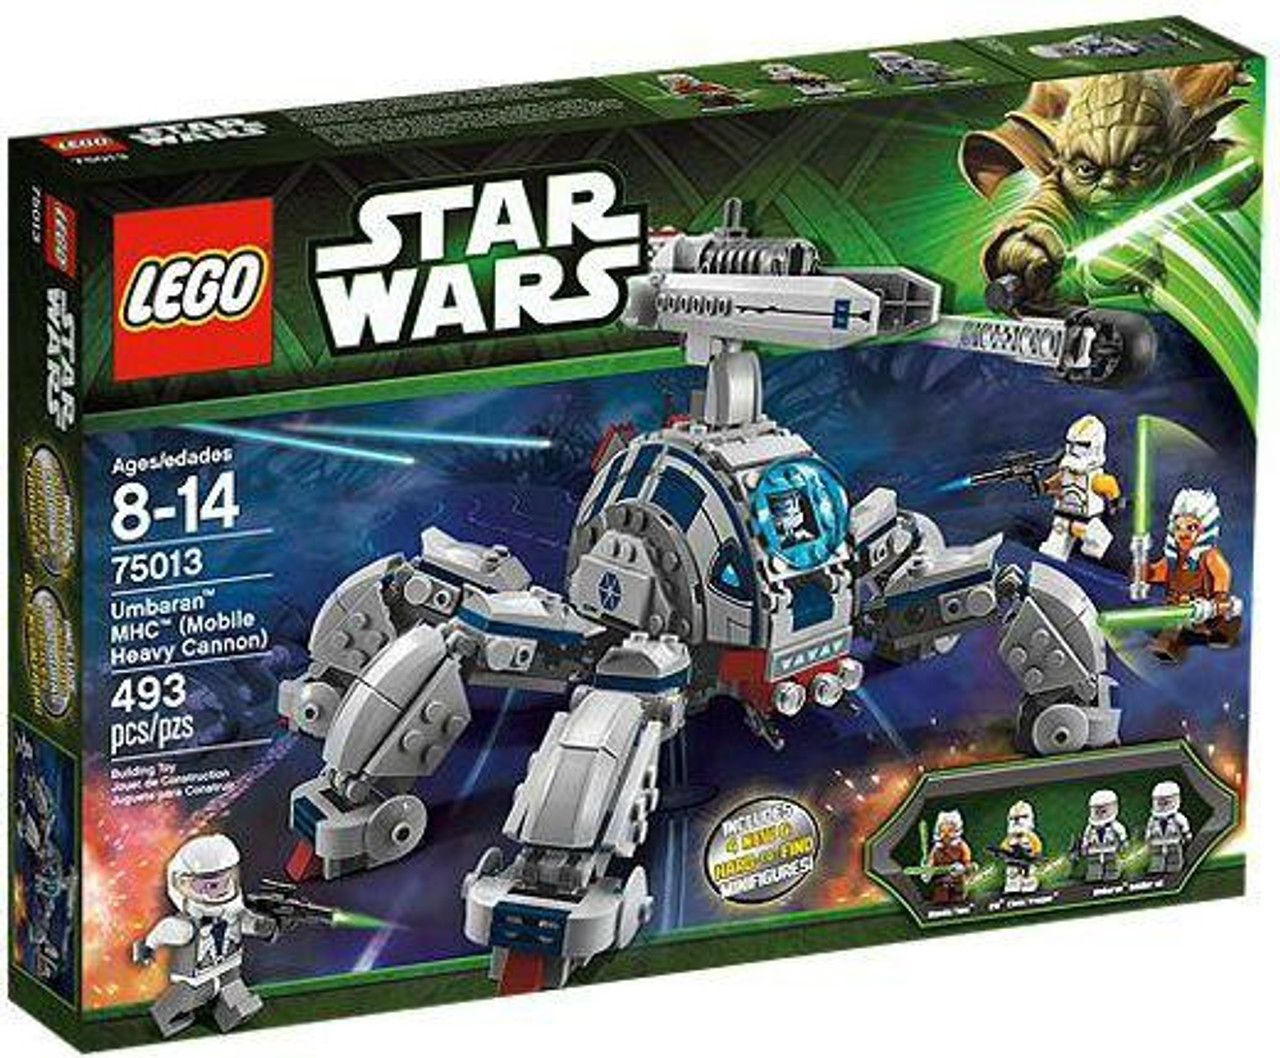 LEGO Star Wars The Clone Wars Umbaran MHC [Mobile Heavy Cannon] Set #75013